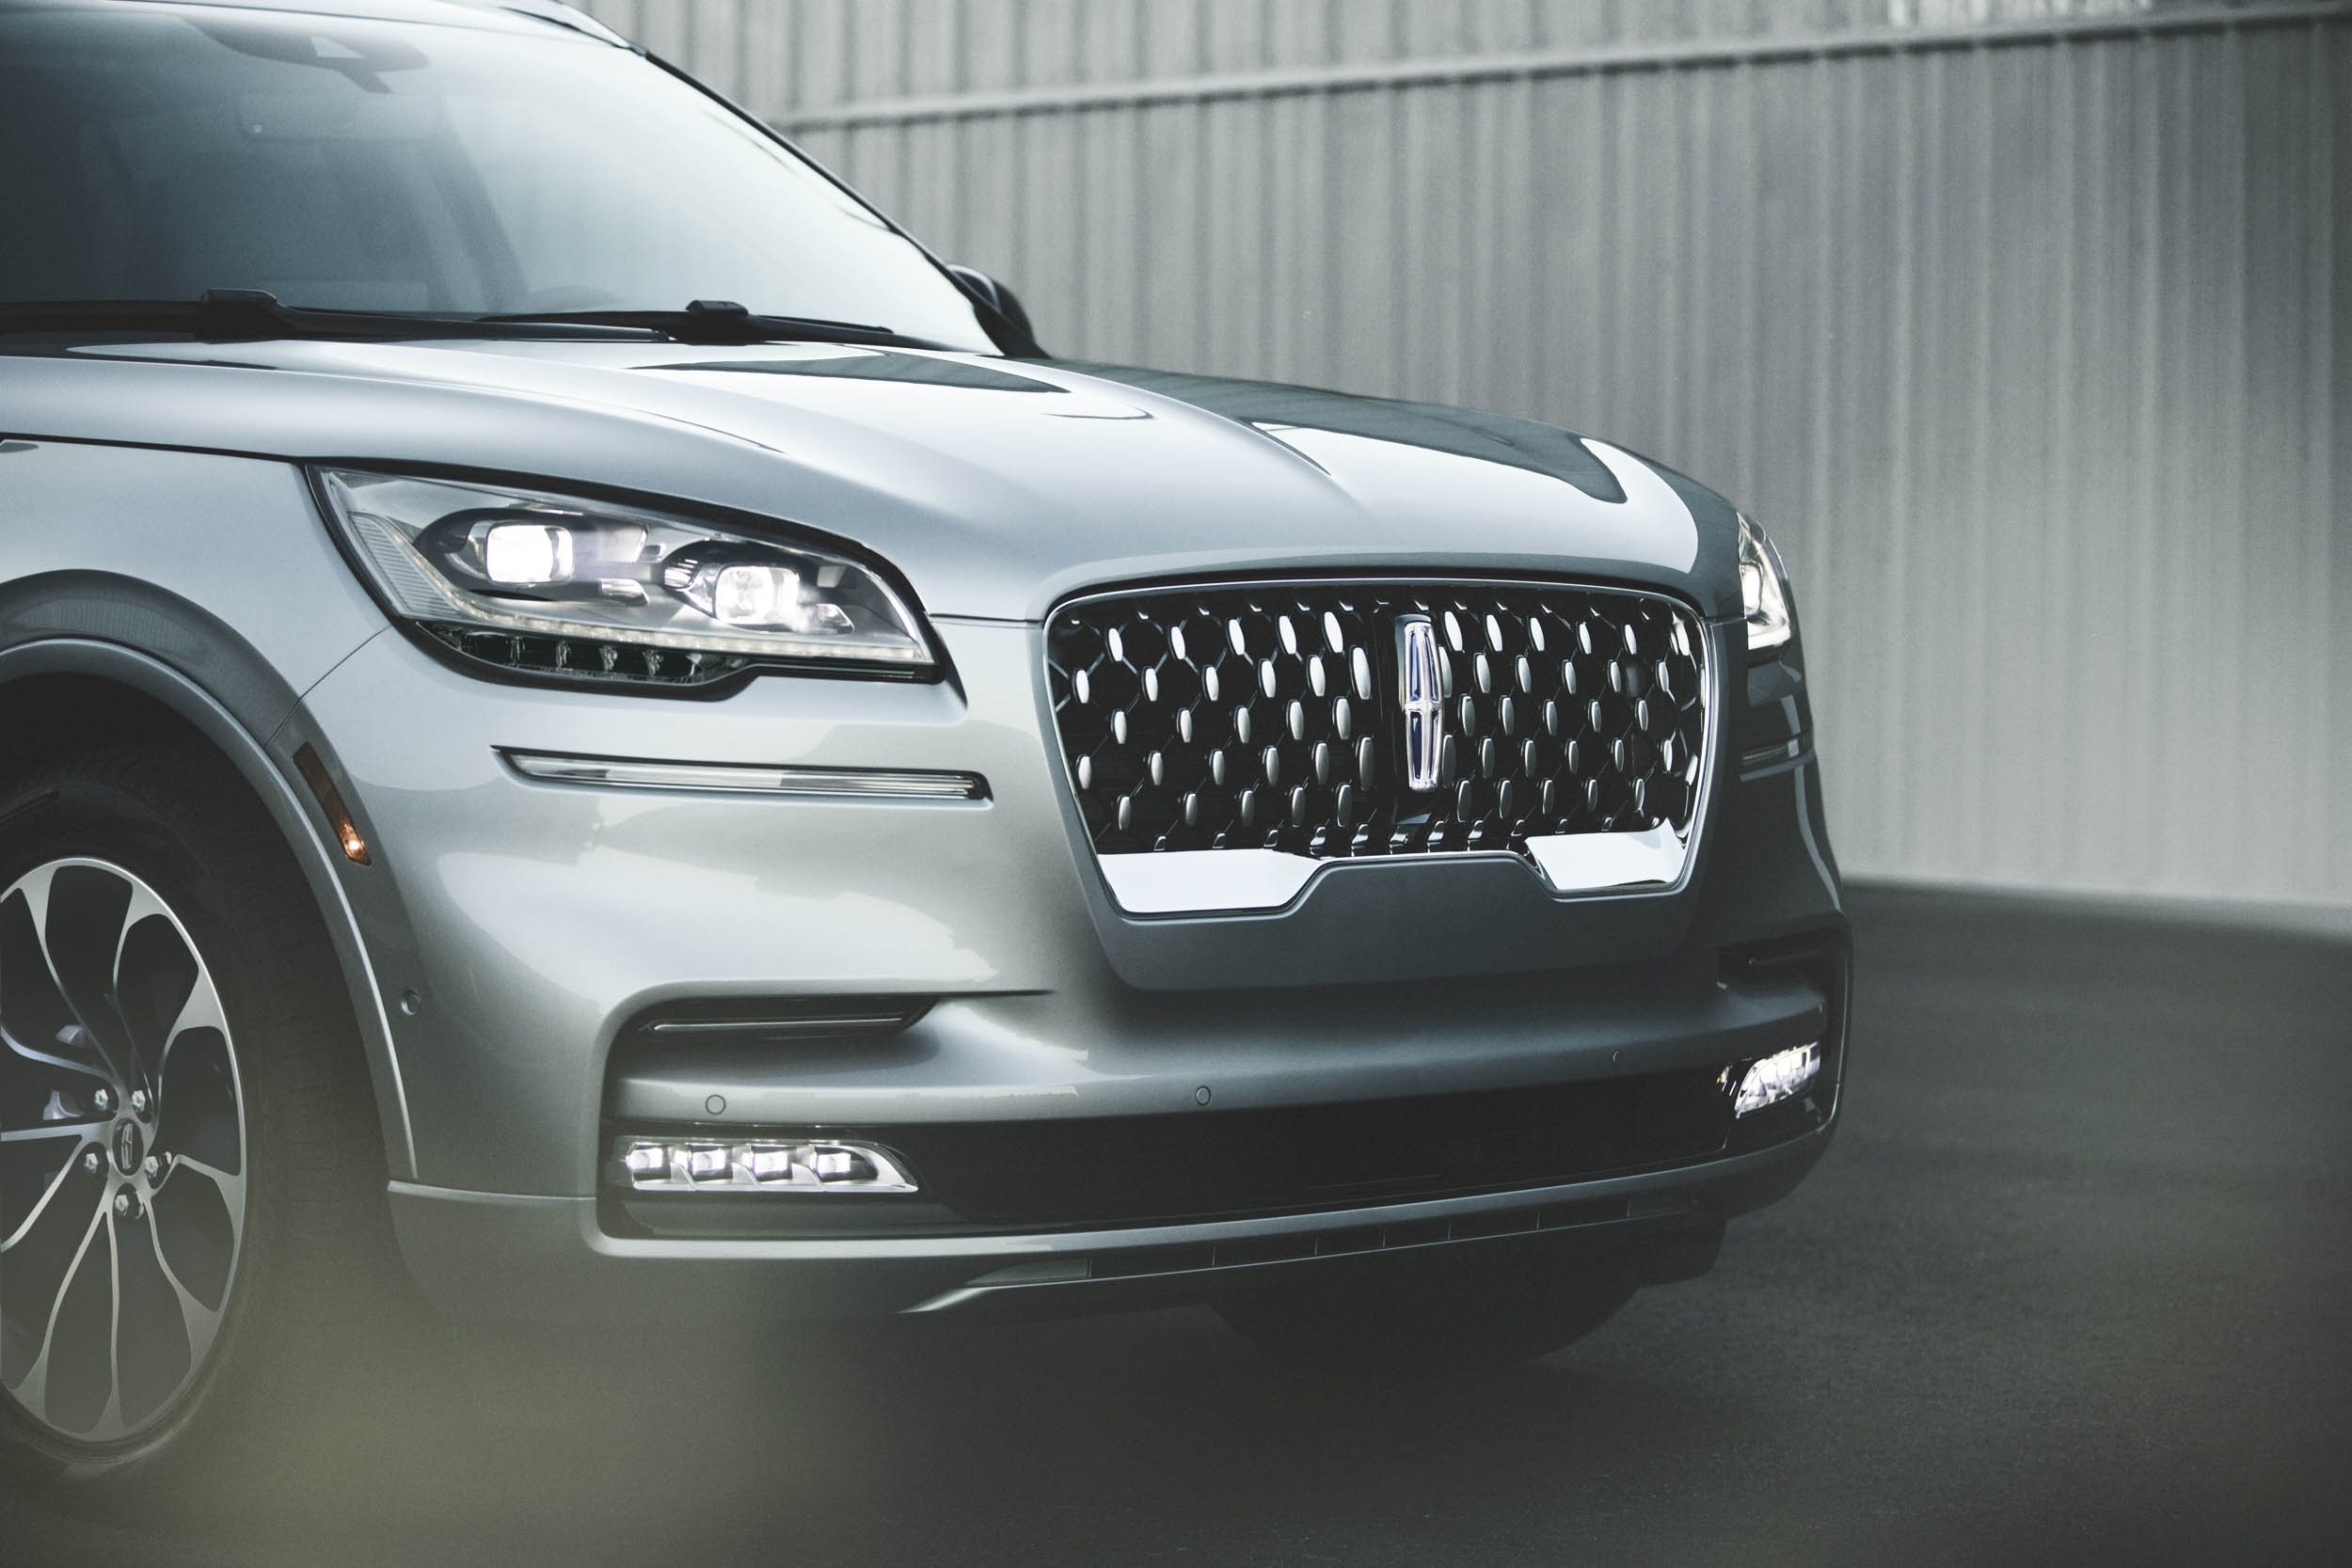 2020 Lincoln Aviator nose